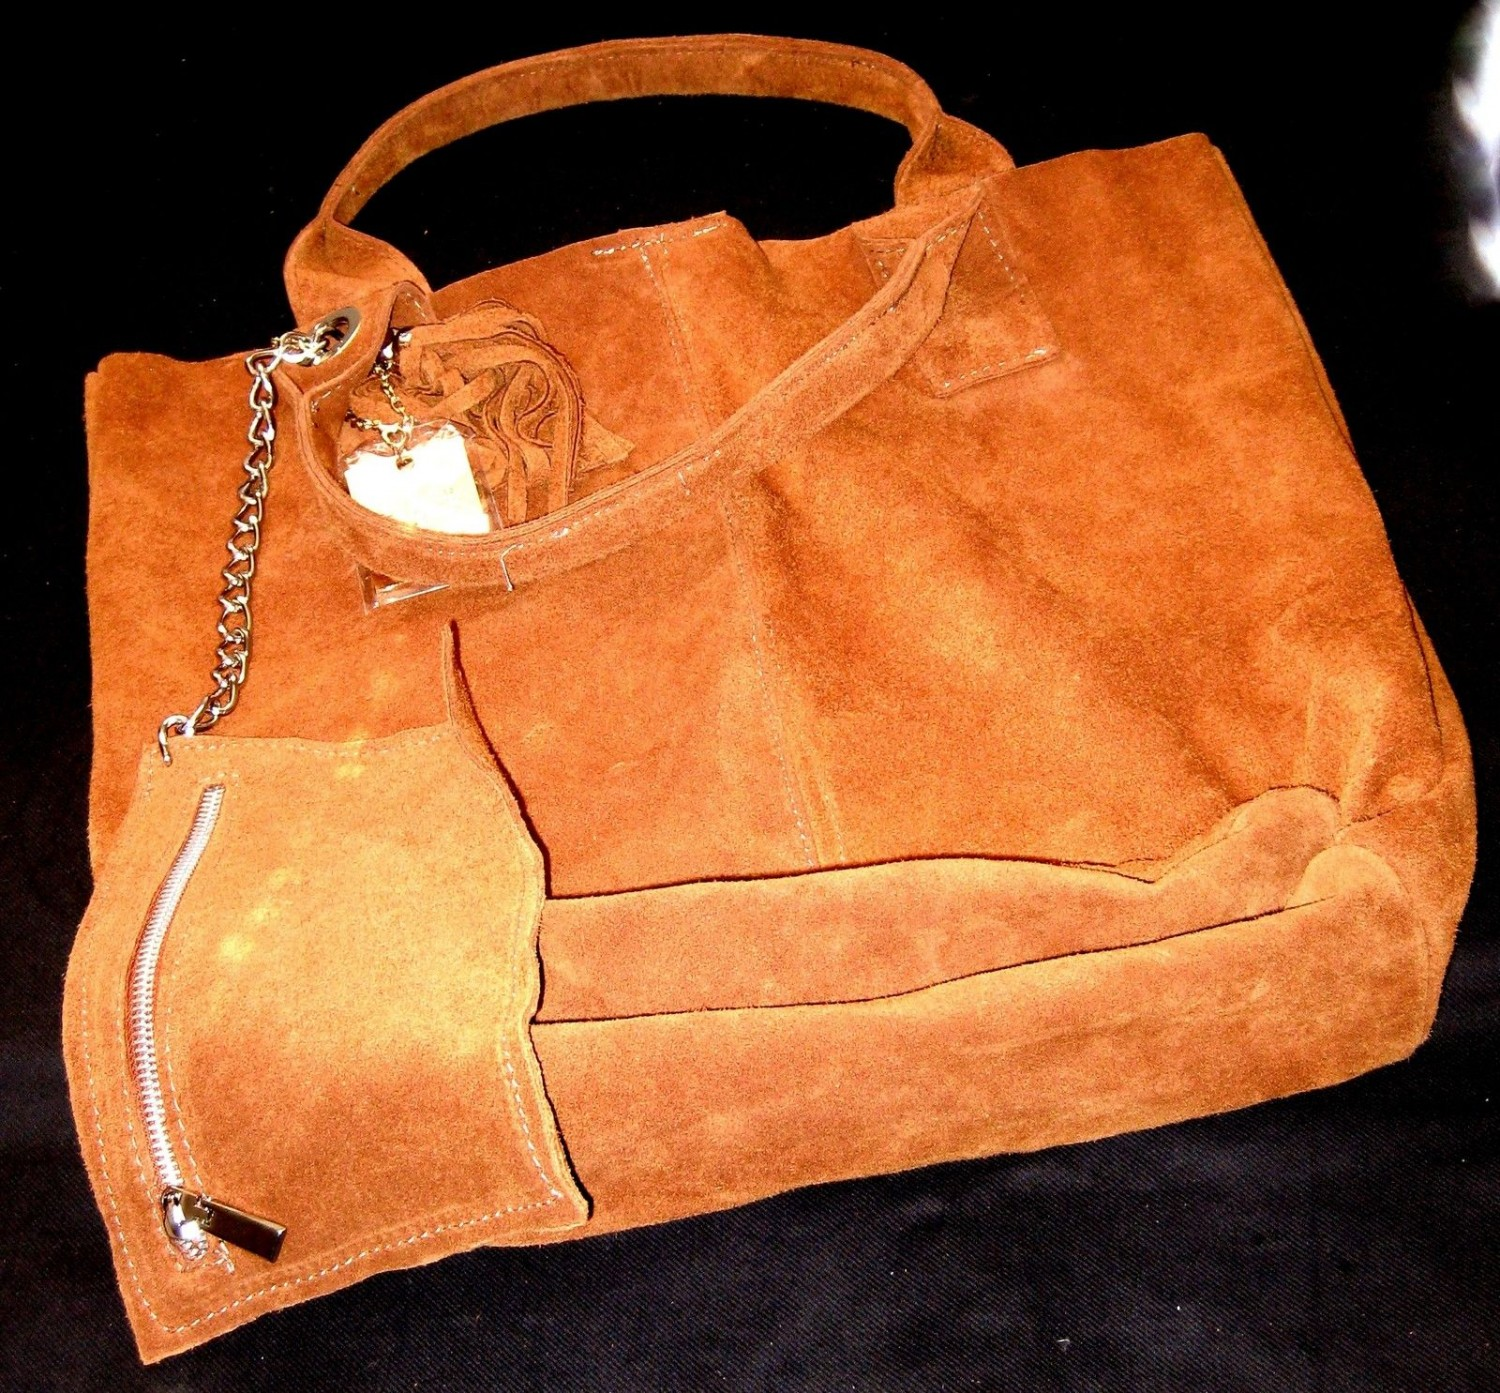 100% ITALIAN GENUINE SUEDE LEATHER HANDBAG ORANGE COLOR